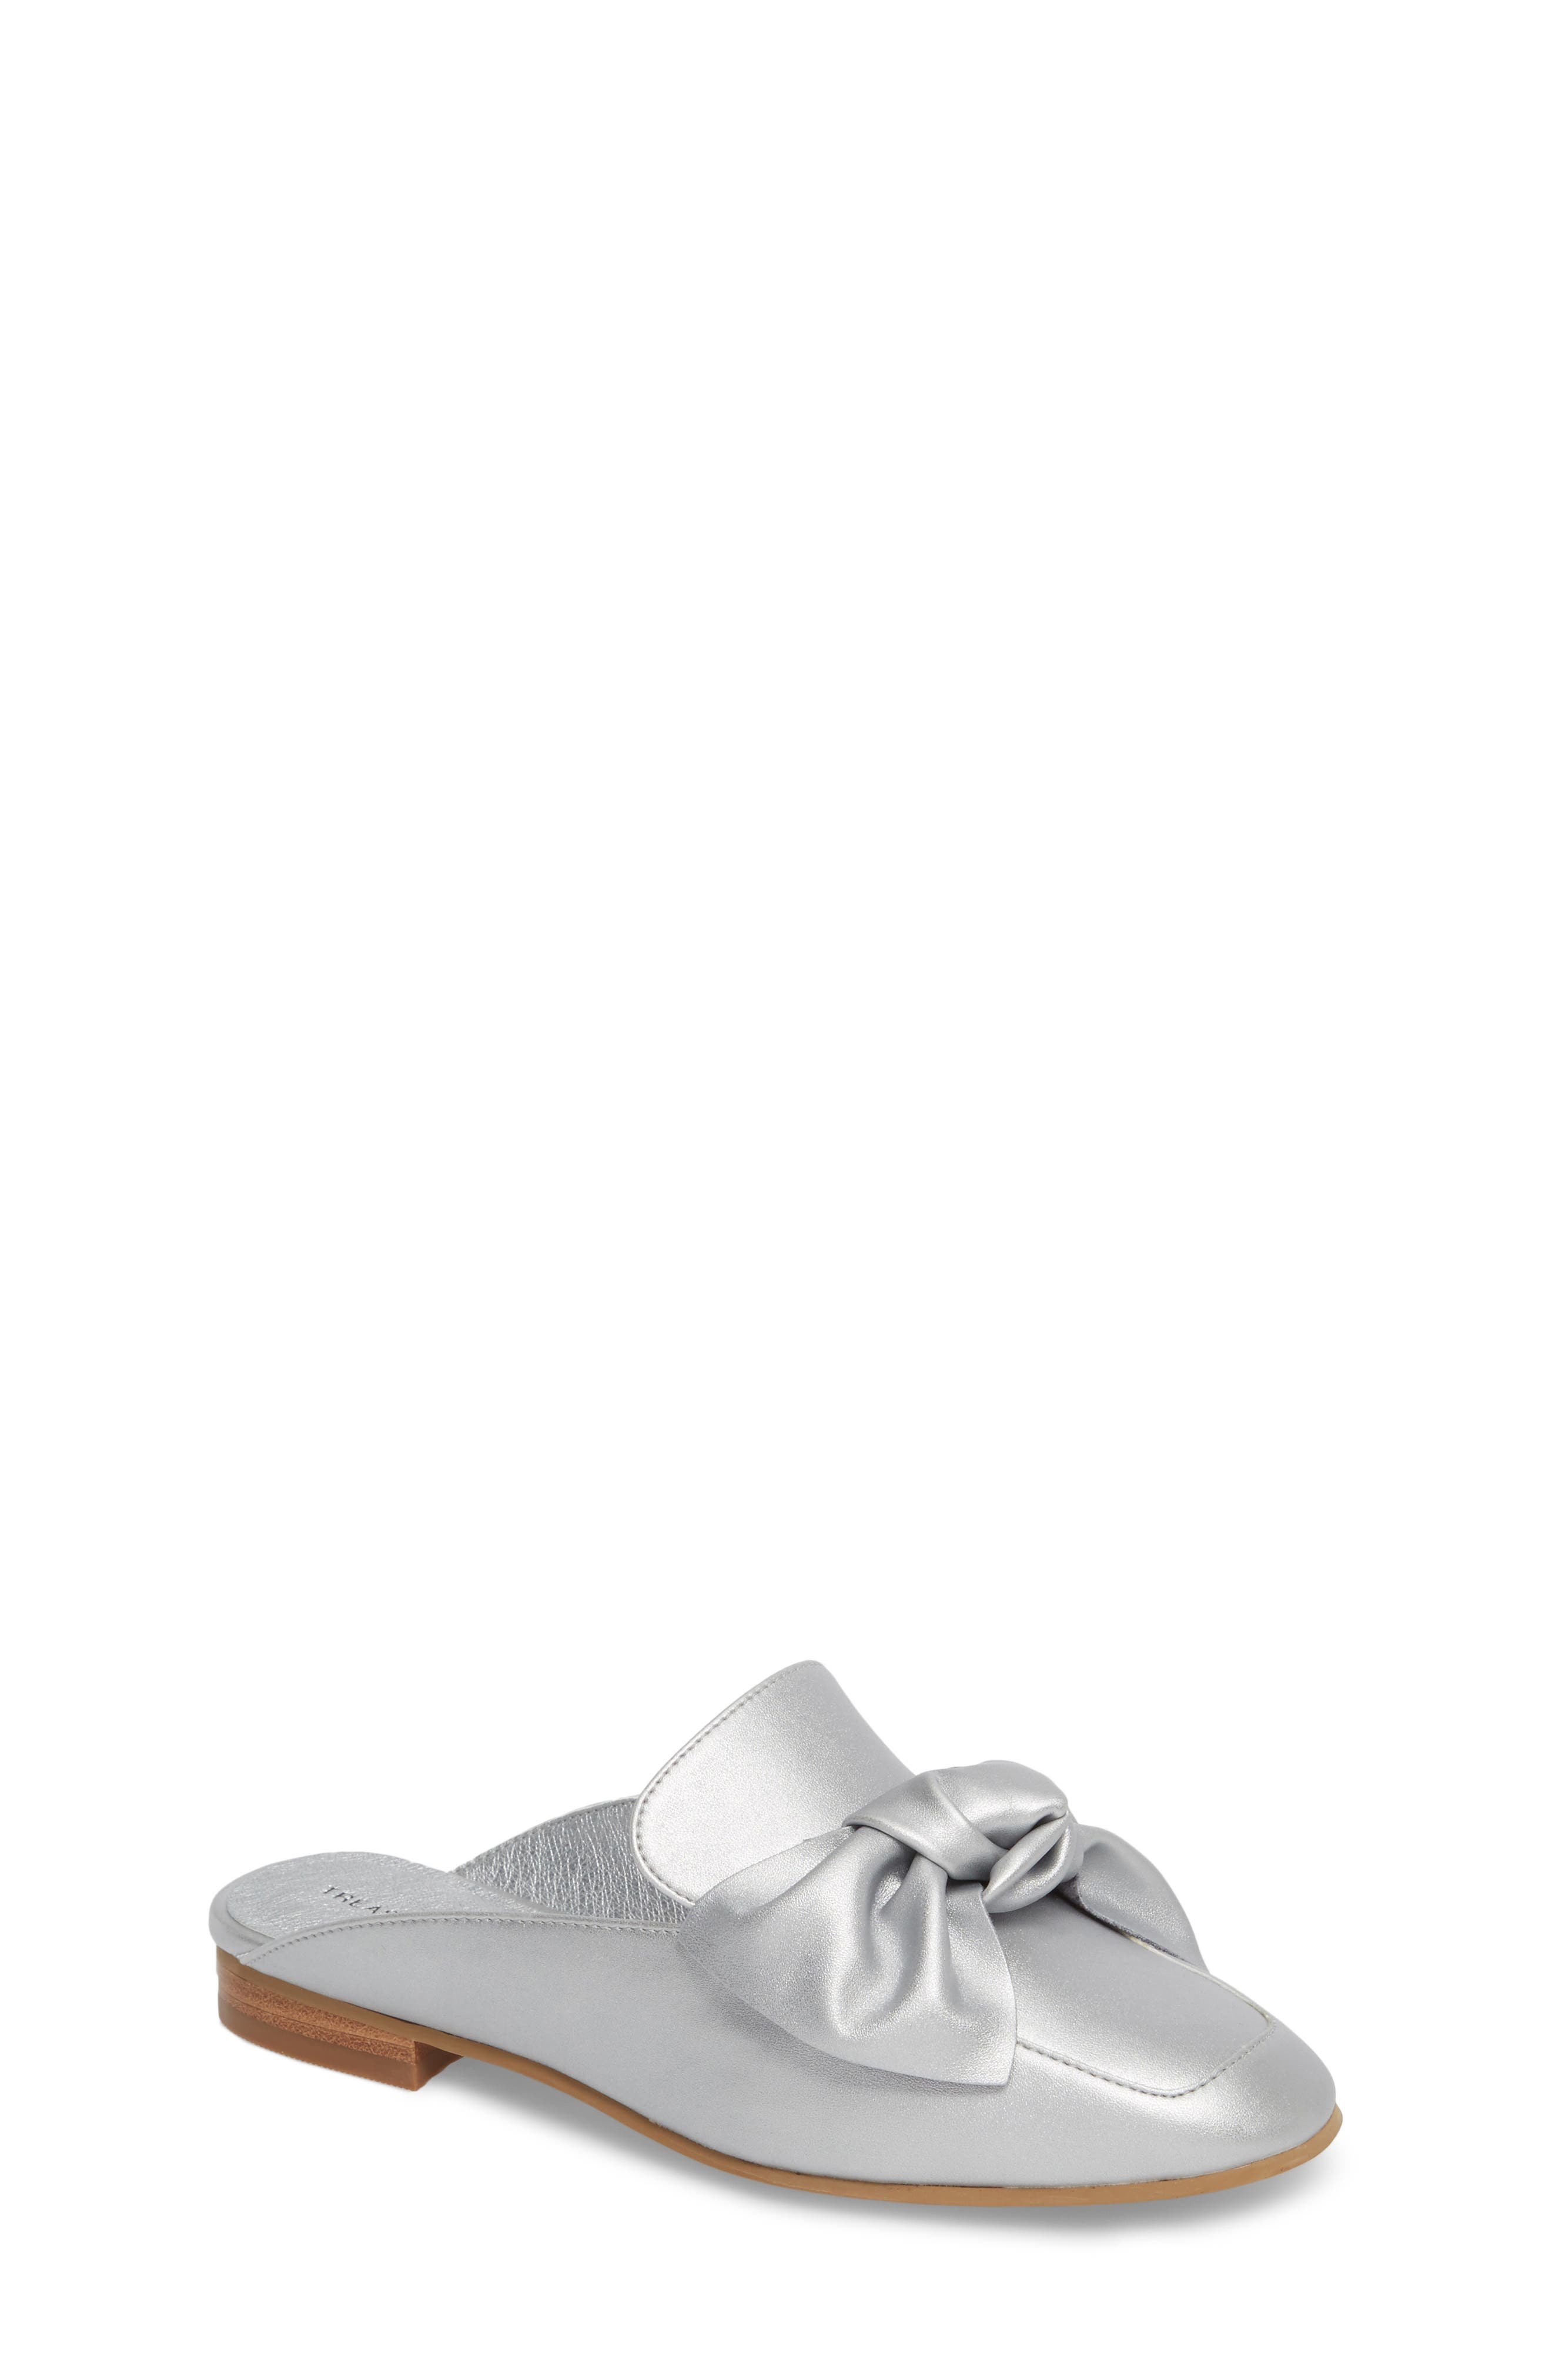 Gina Knotted Loafer Mule,                         Main,                         color, Silver Faux Leather